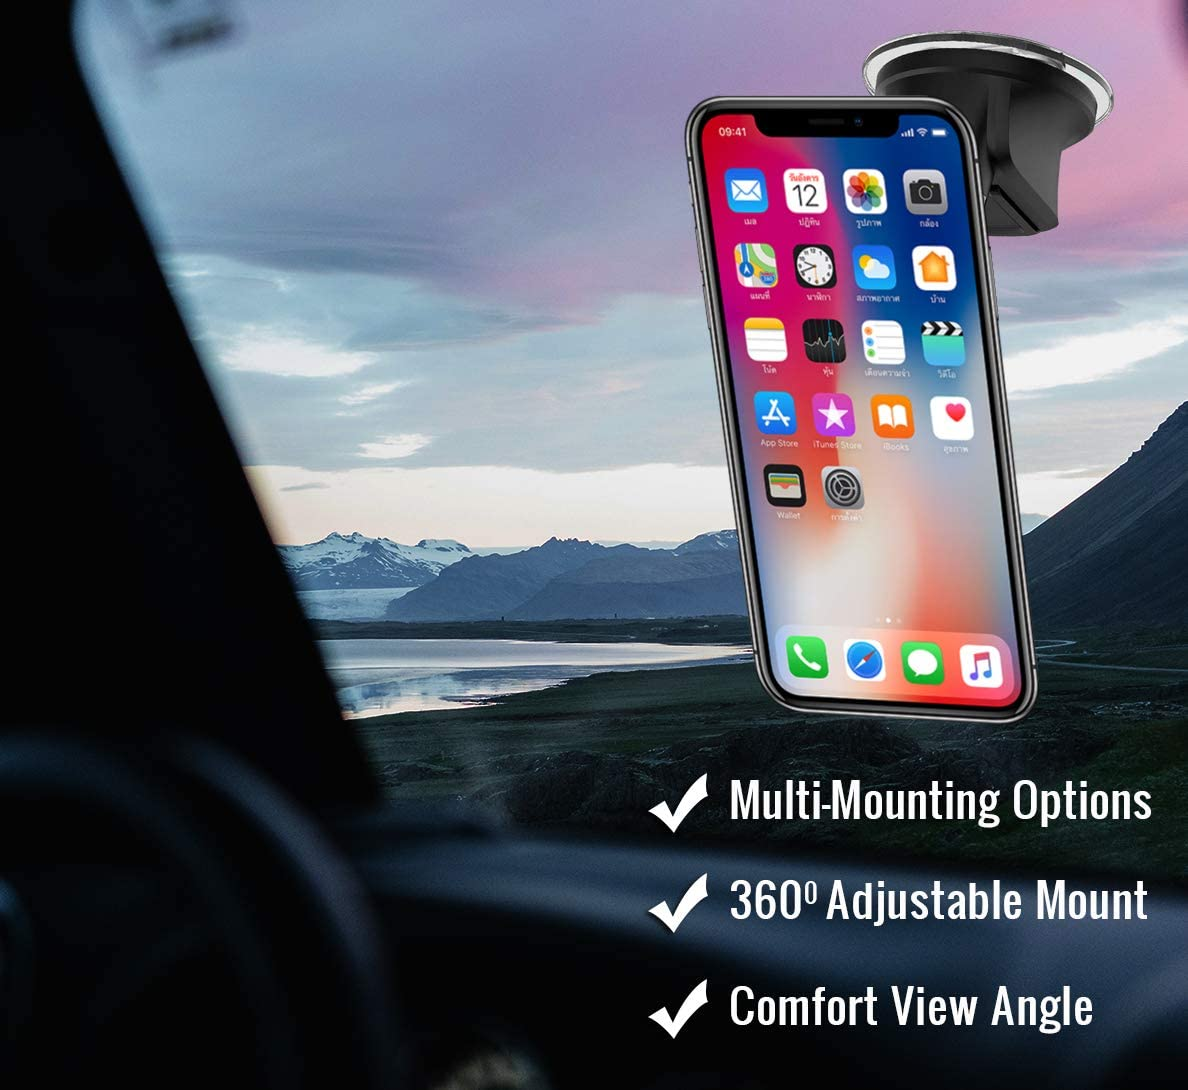 Magnetic Qi Certified Fast Charging Enabled Phone and GPS Suction Cup Adhesive Holder 360 Degree for Windshield Dashboard Window Mounting Crolan Wireless Car Charger Mount